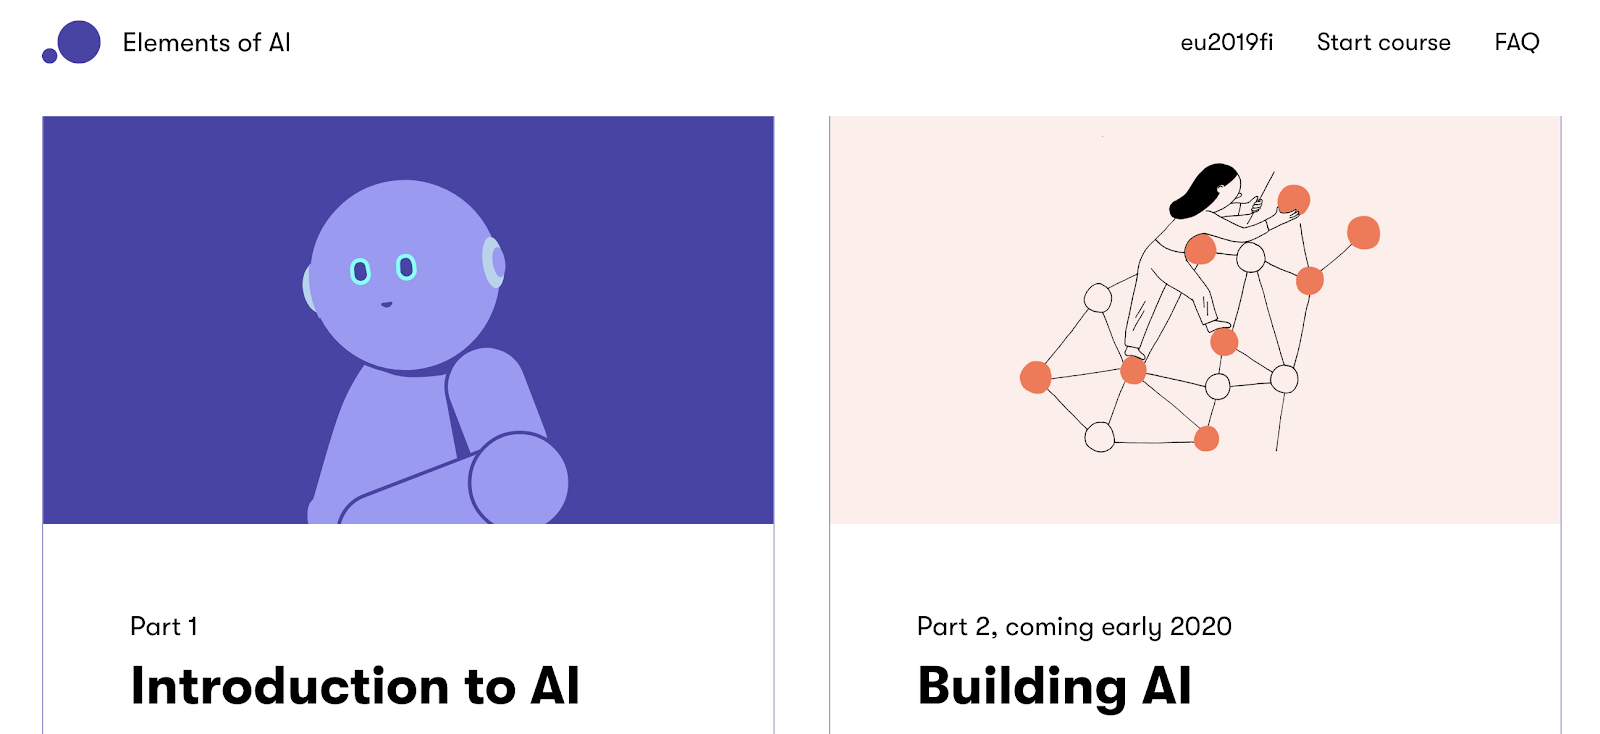 Elements of AI courses